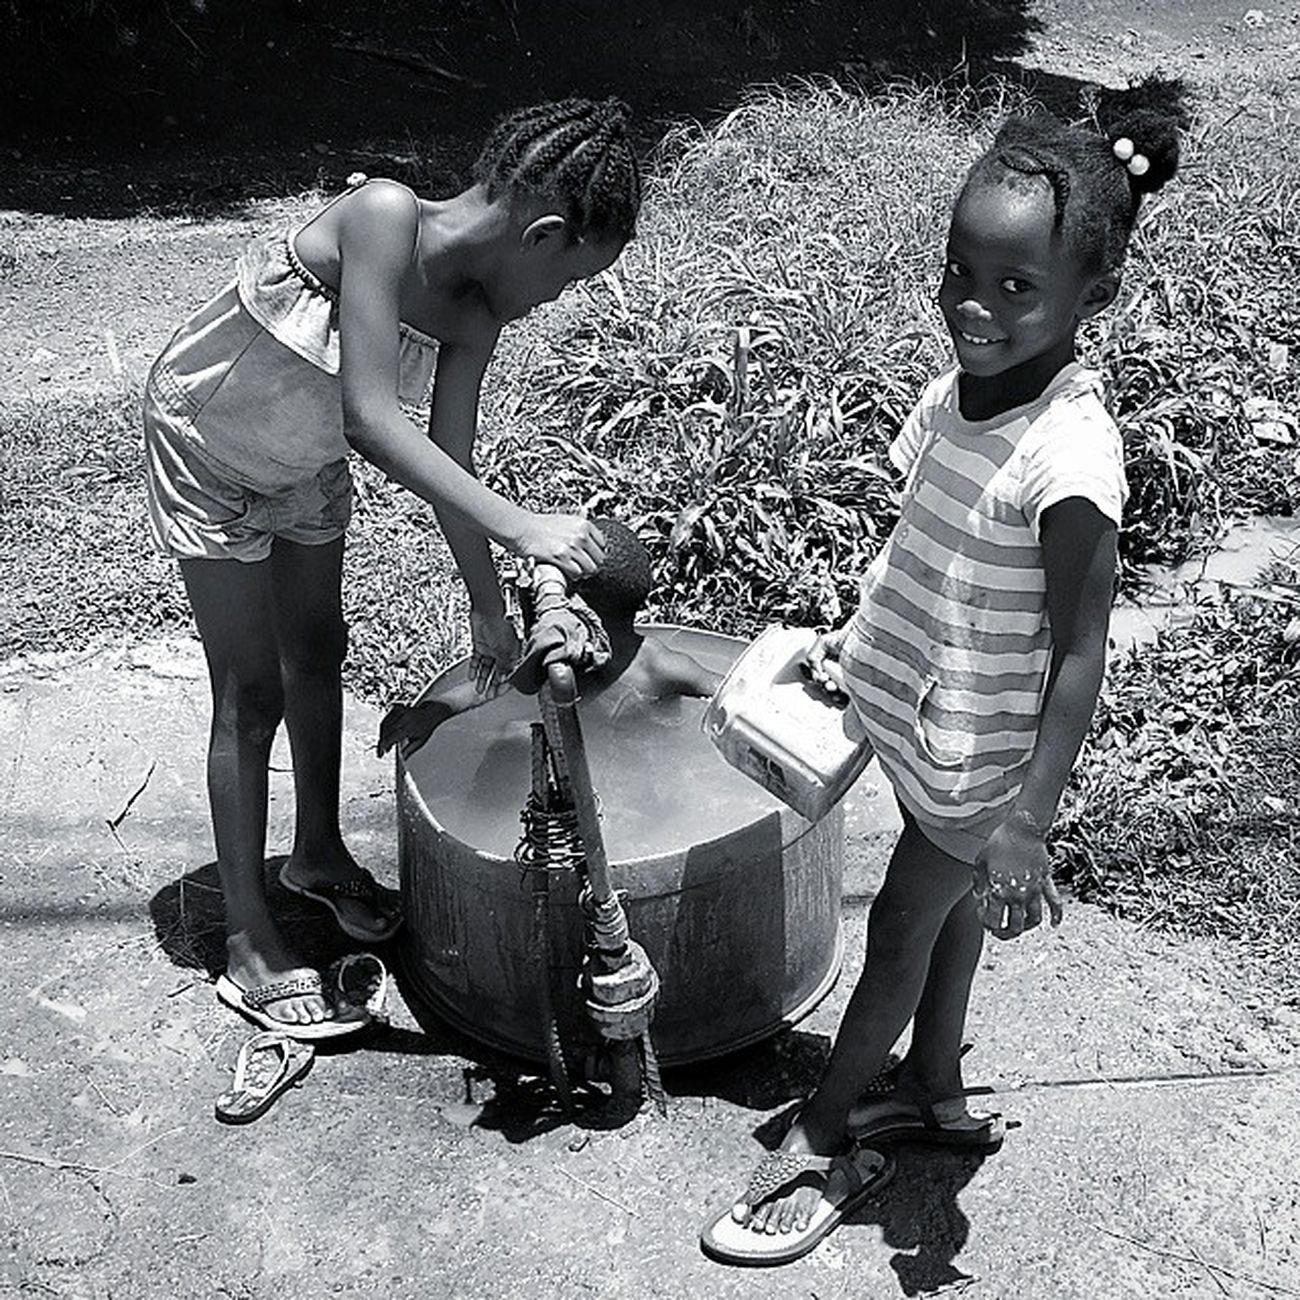 RICH IN LOVE !! Kidsmood_bnw PureGrenada Livefunner Uncoveryours Westindies_landscape Ig_caribbean Amazingphotohunter Andyjohnsonphotography Theblueislands Ilivewhereyouvacation Islandlivity Streetphotography Stunning_shot Insta_noiretblanc Kids Nhdaily Naturalhair 4chairchicks 4chairkids Grenada